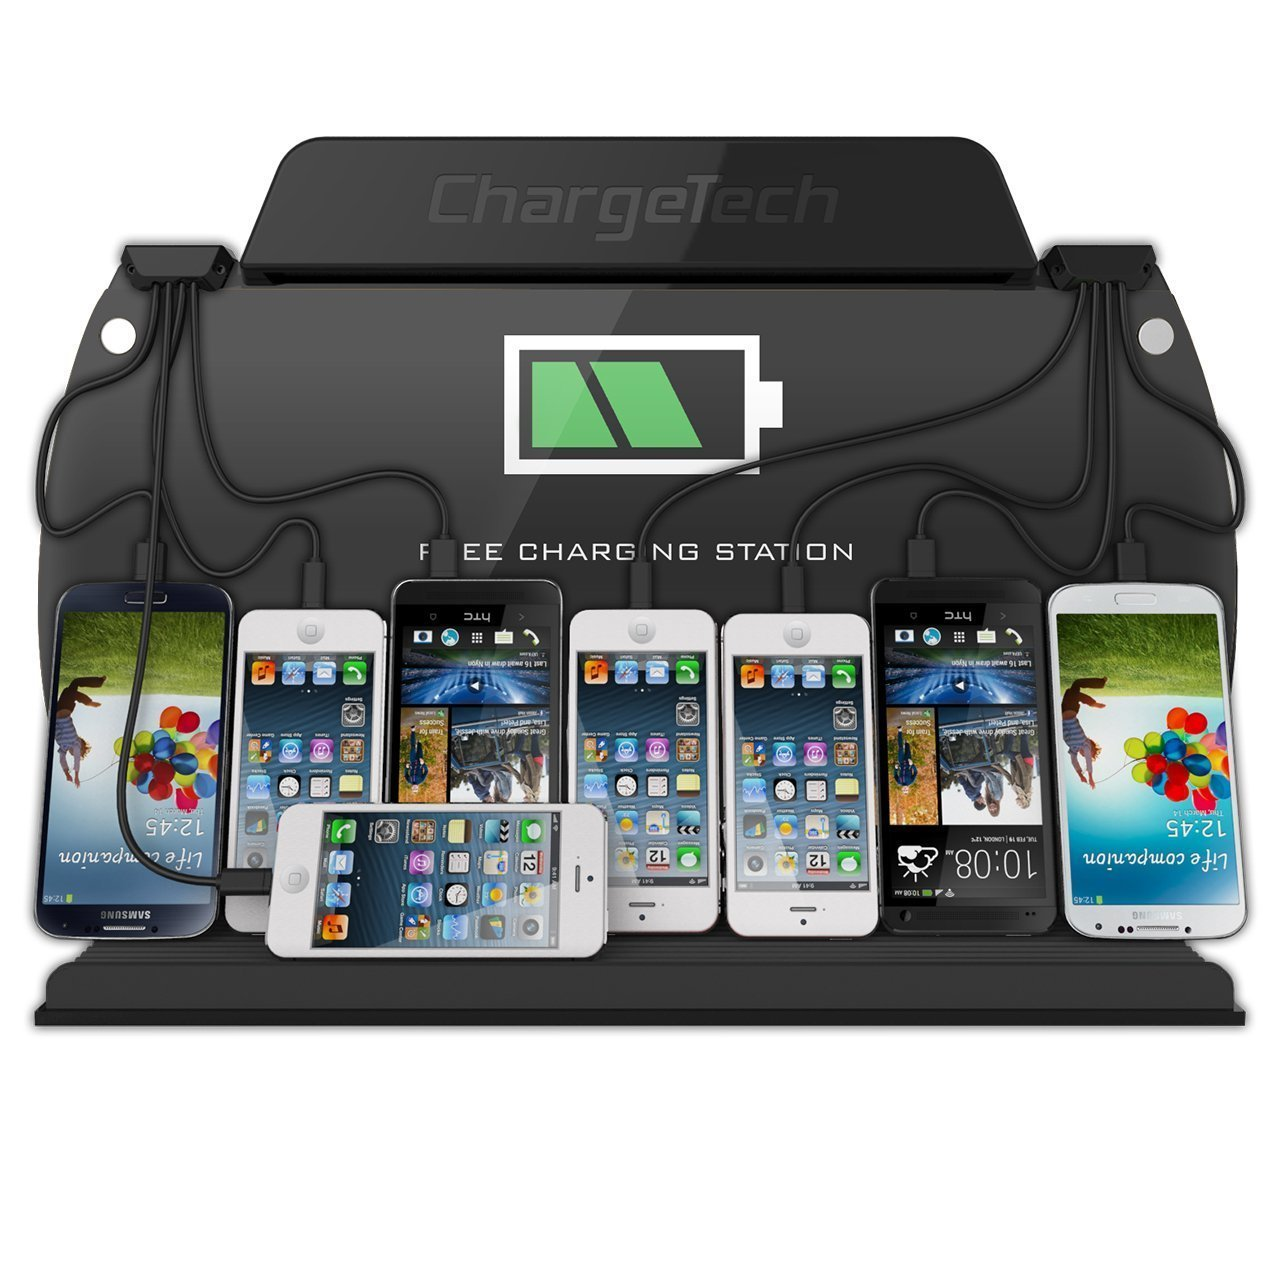 ChargeTech Wall Mounted Cell Phone Charging Station Dock Hub w/ 8 High Speed Cables for All Devices: iPhone, Samsung, Android, Tablets - Fully Customizable Cables & Background Art (Model: WM9)